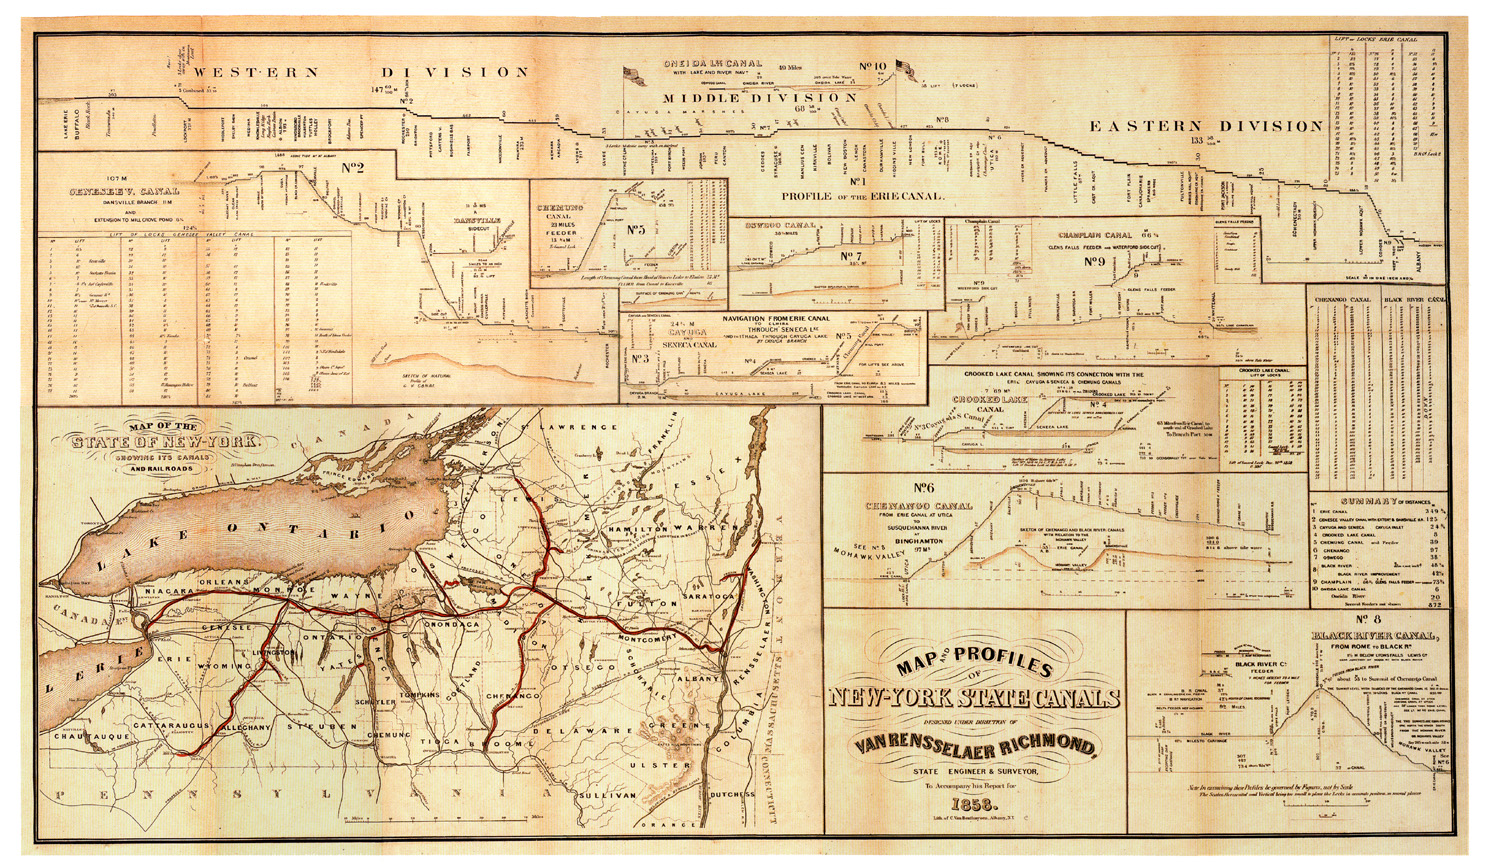 New York State Canals, 1858. Image courtesy of The Erie Canal site.